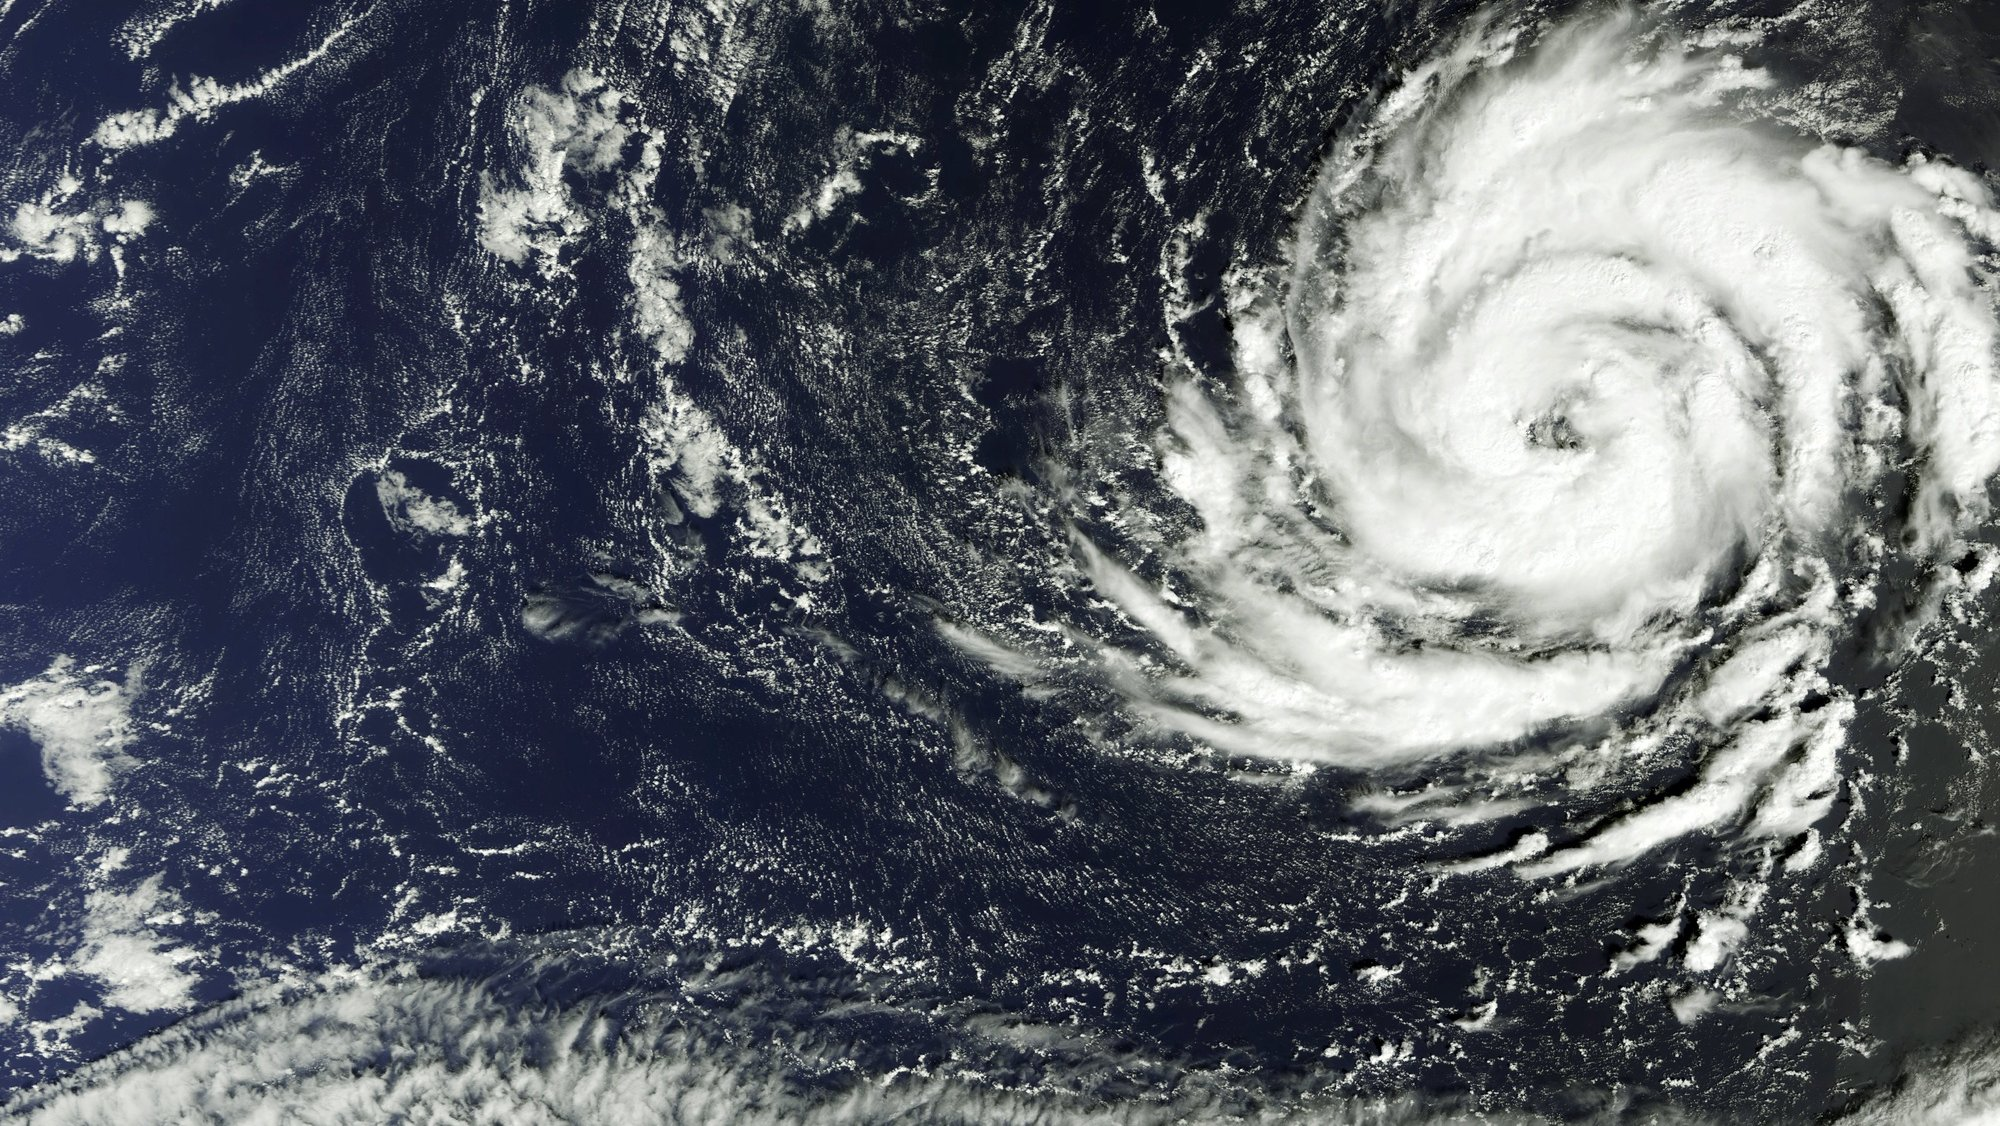 epa06263001 A handout photo made available by the European Space Agency (ESA) on 13 October 2017 shows hurricane Ophelia captured by the Copernicus Sentinel-3A satellite on 11 October 2017. The Copernicus Sentinel-3A satellite captured this image on 11 October 2017, when Hurricane Ophelia was about 1300 km southwest of the Azores islands and some 2000 km off the African coast. Originally classified as a tropical storm, it has been upgraded to a hurricane. The US National Hurricane Centre said that Ophelia could become even stronger in the next days. The storm is moving northeasterly, threatening to hit the northwestern tip of Spain before moving towards Britain.  EPA/ESA / HANDOUT  HANDOUT EDITORIAL USE ONLY/NO SALES